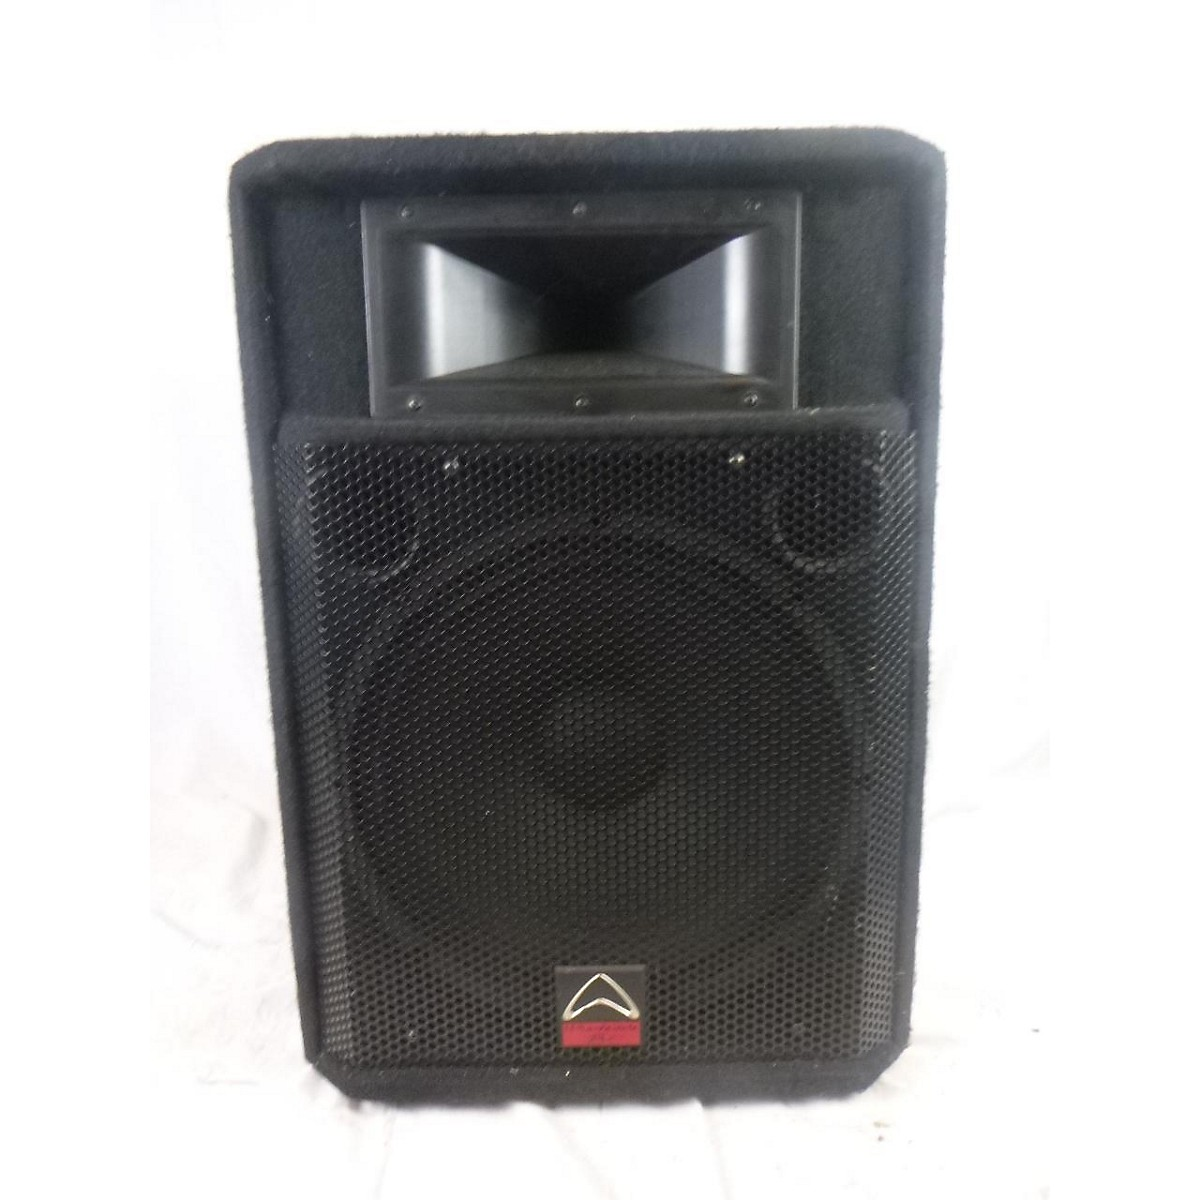 In Store Used Used Warfdale EVPS715 Unpowered Speaker